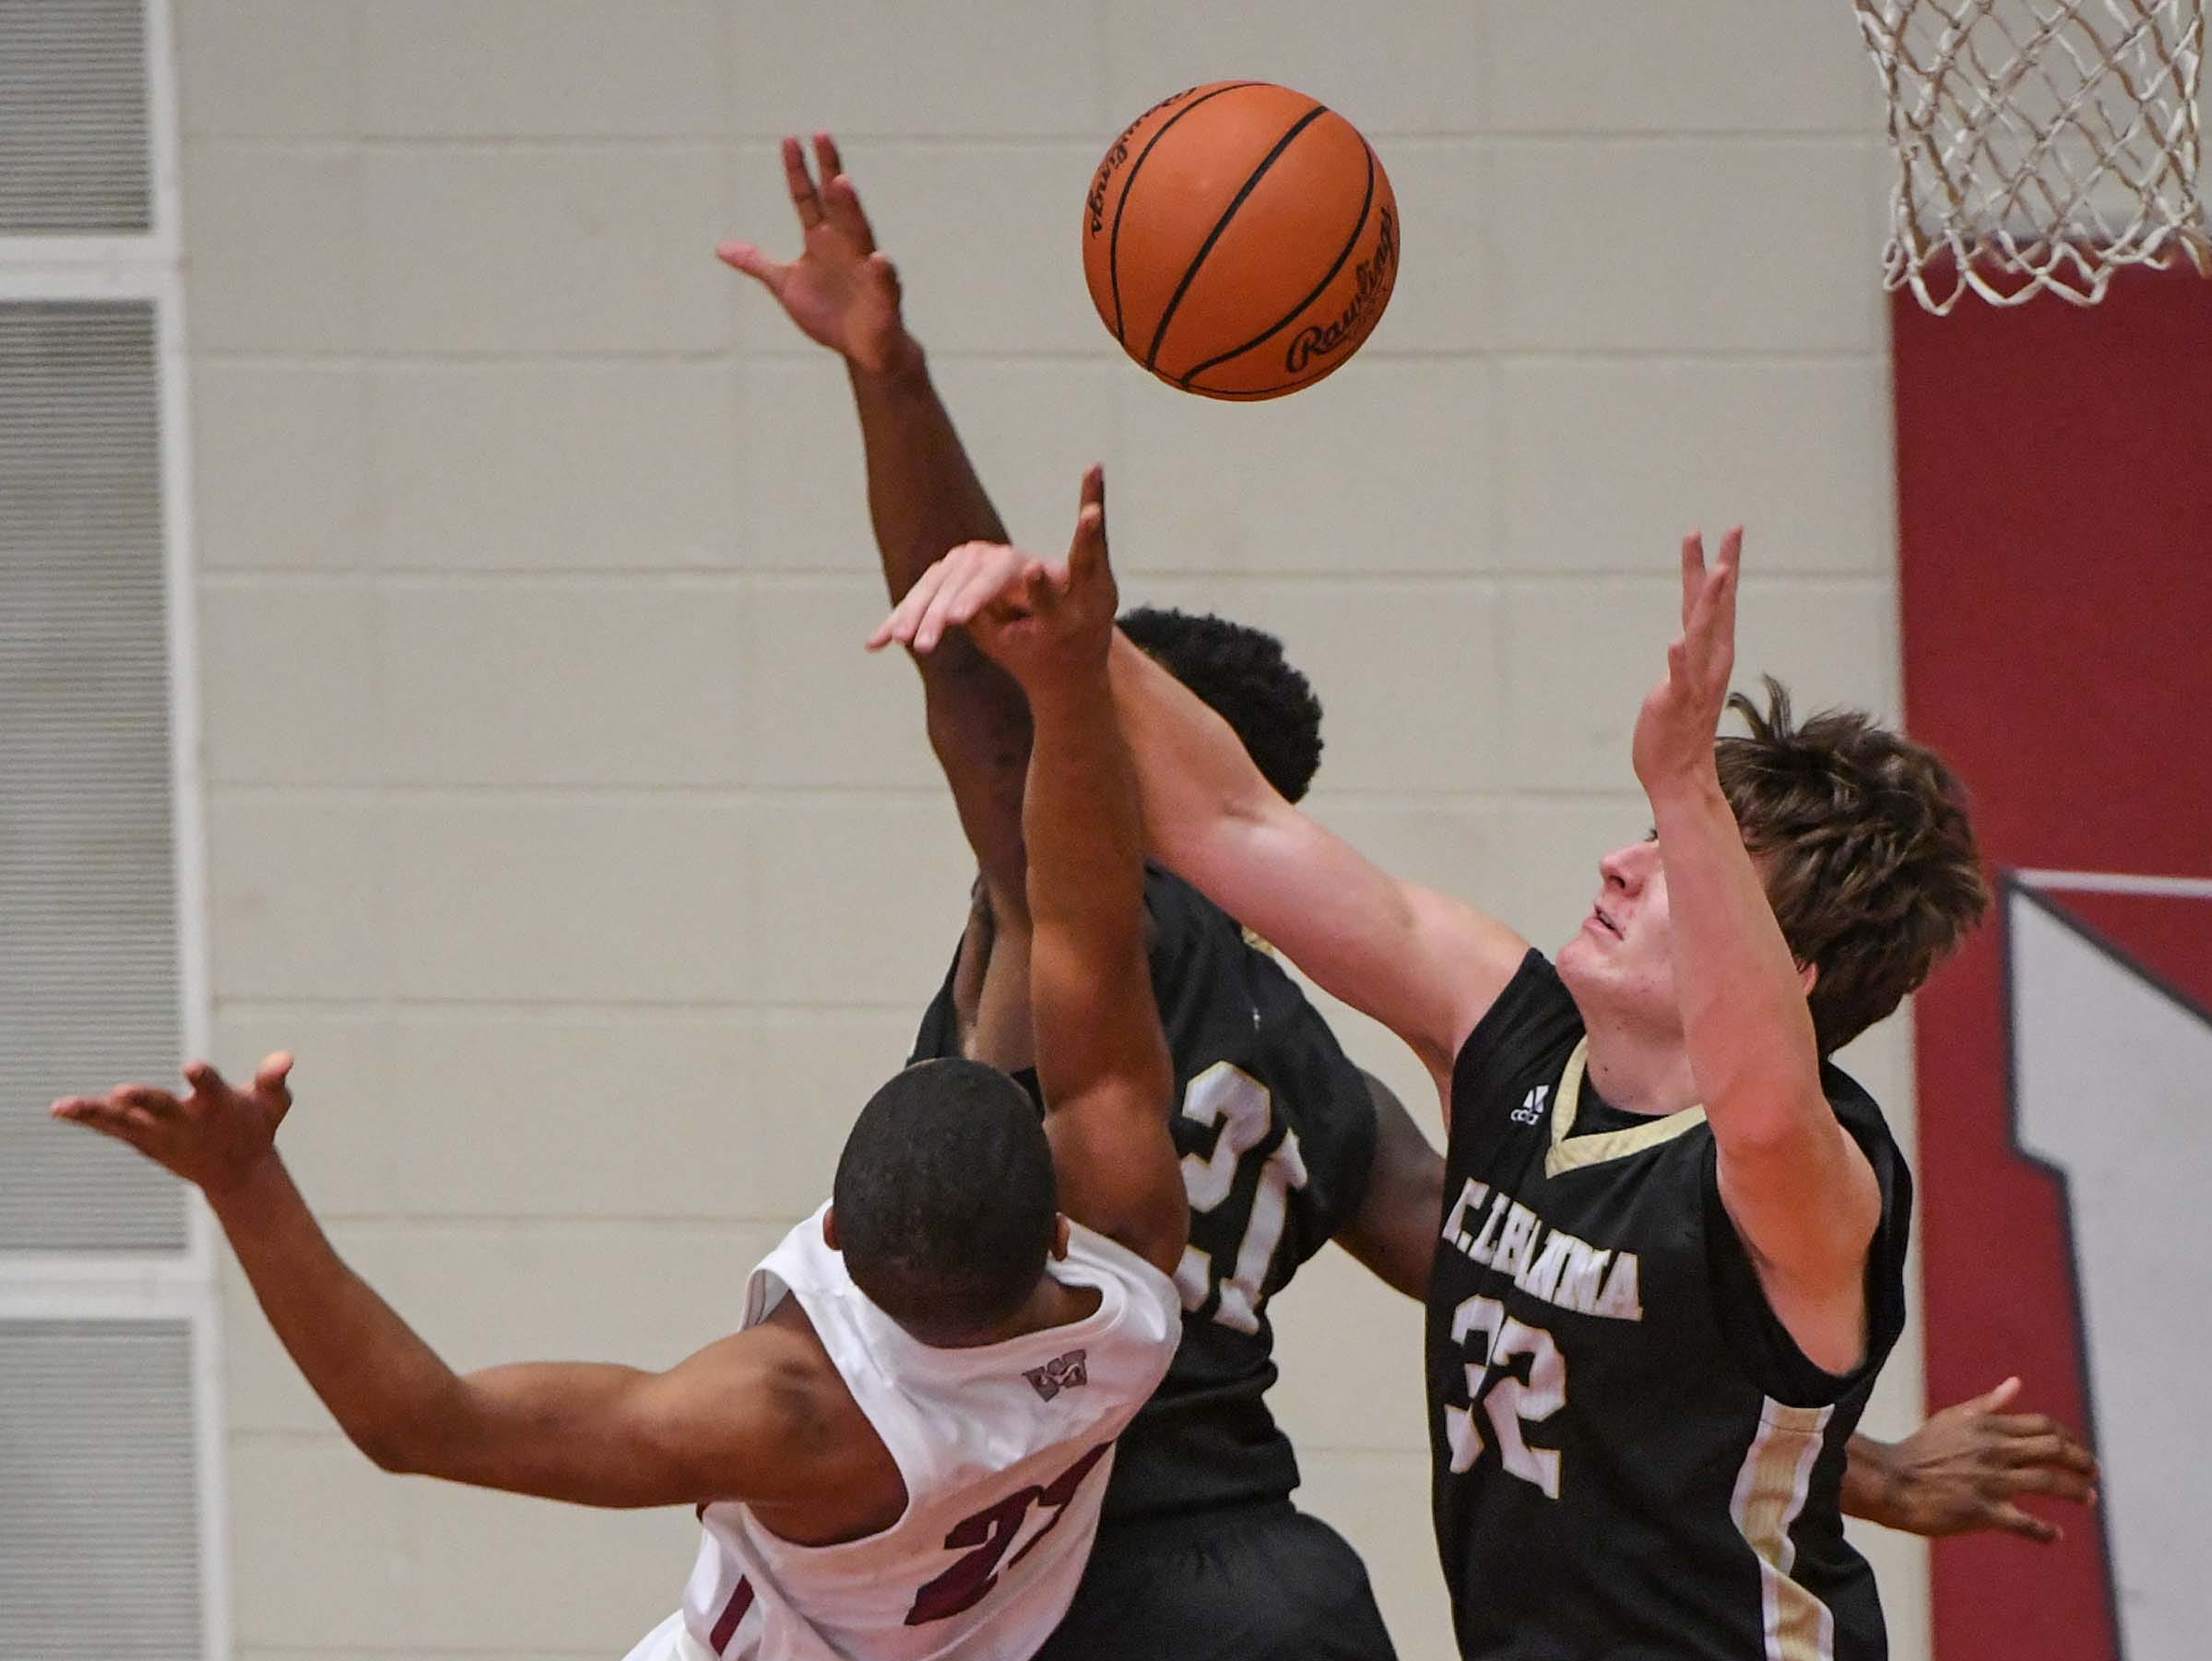 TL Hanna junior John Haddock Rogers(32) fouls Westside senior Paul Johnson(23) during the first quarter at Westside High School in Anderson on Friday.